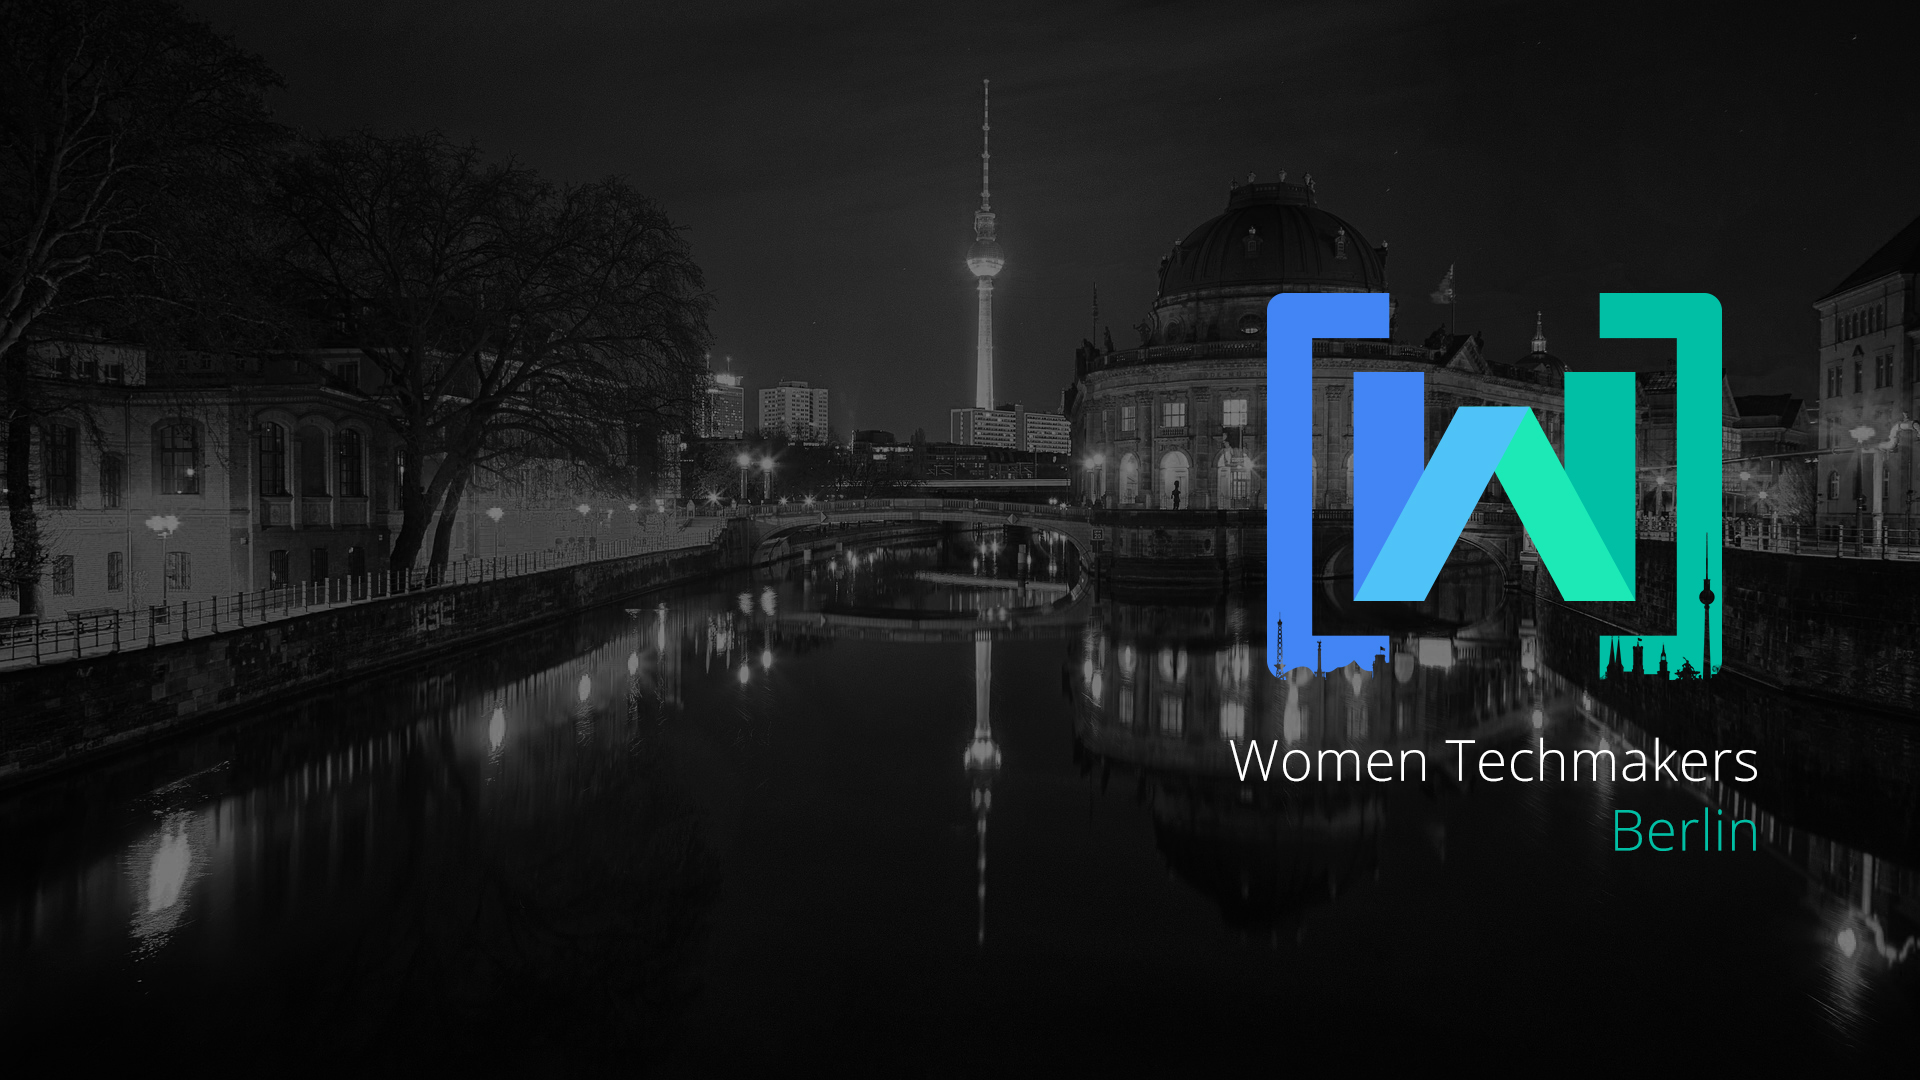 Women Techmakers Berlin